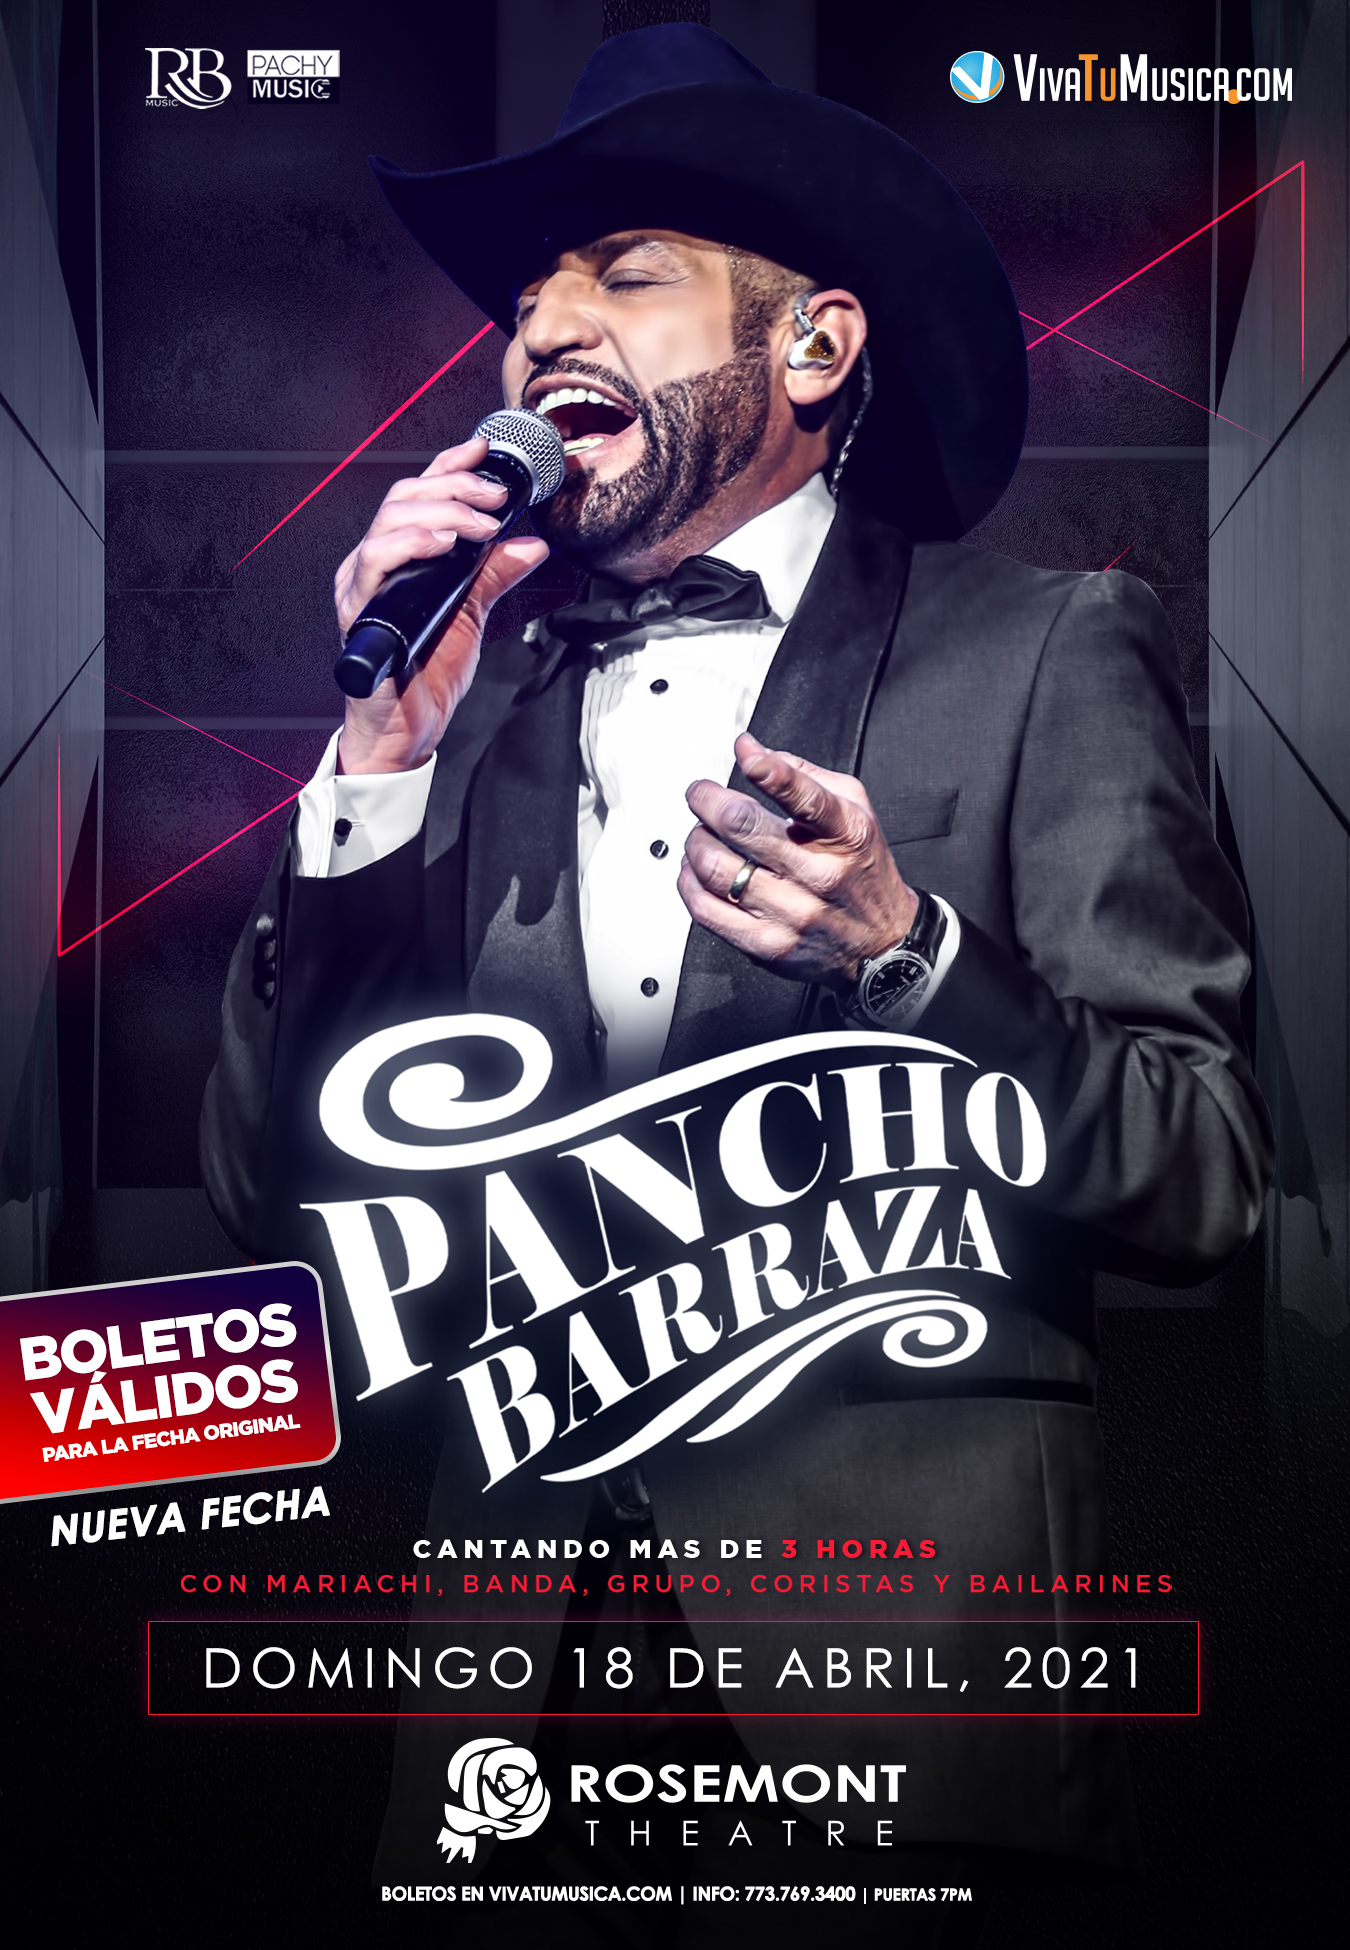 Pancho Barraza - Rosemont Theatre @ Rosemont, IL